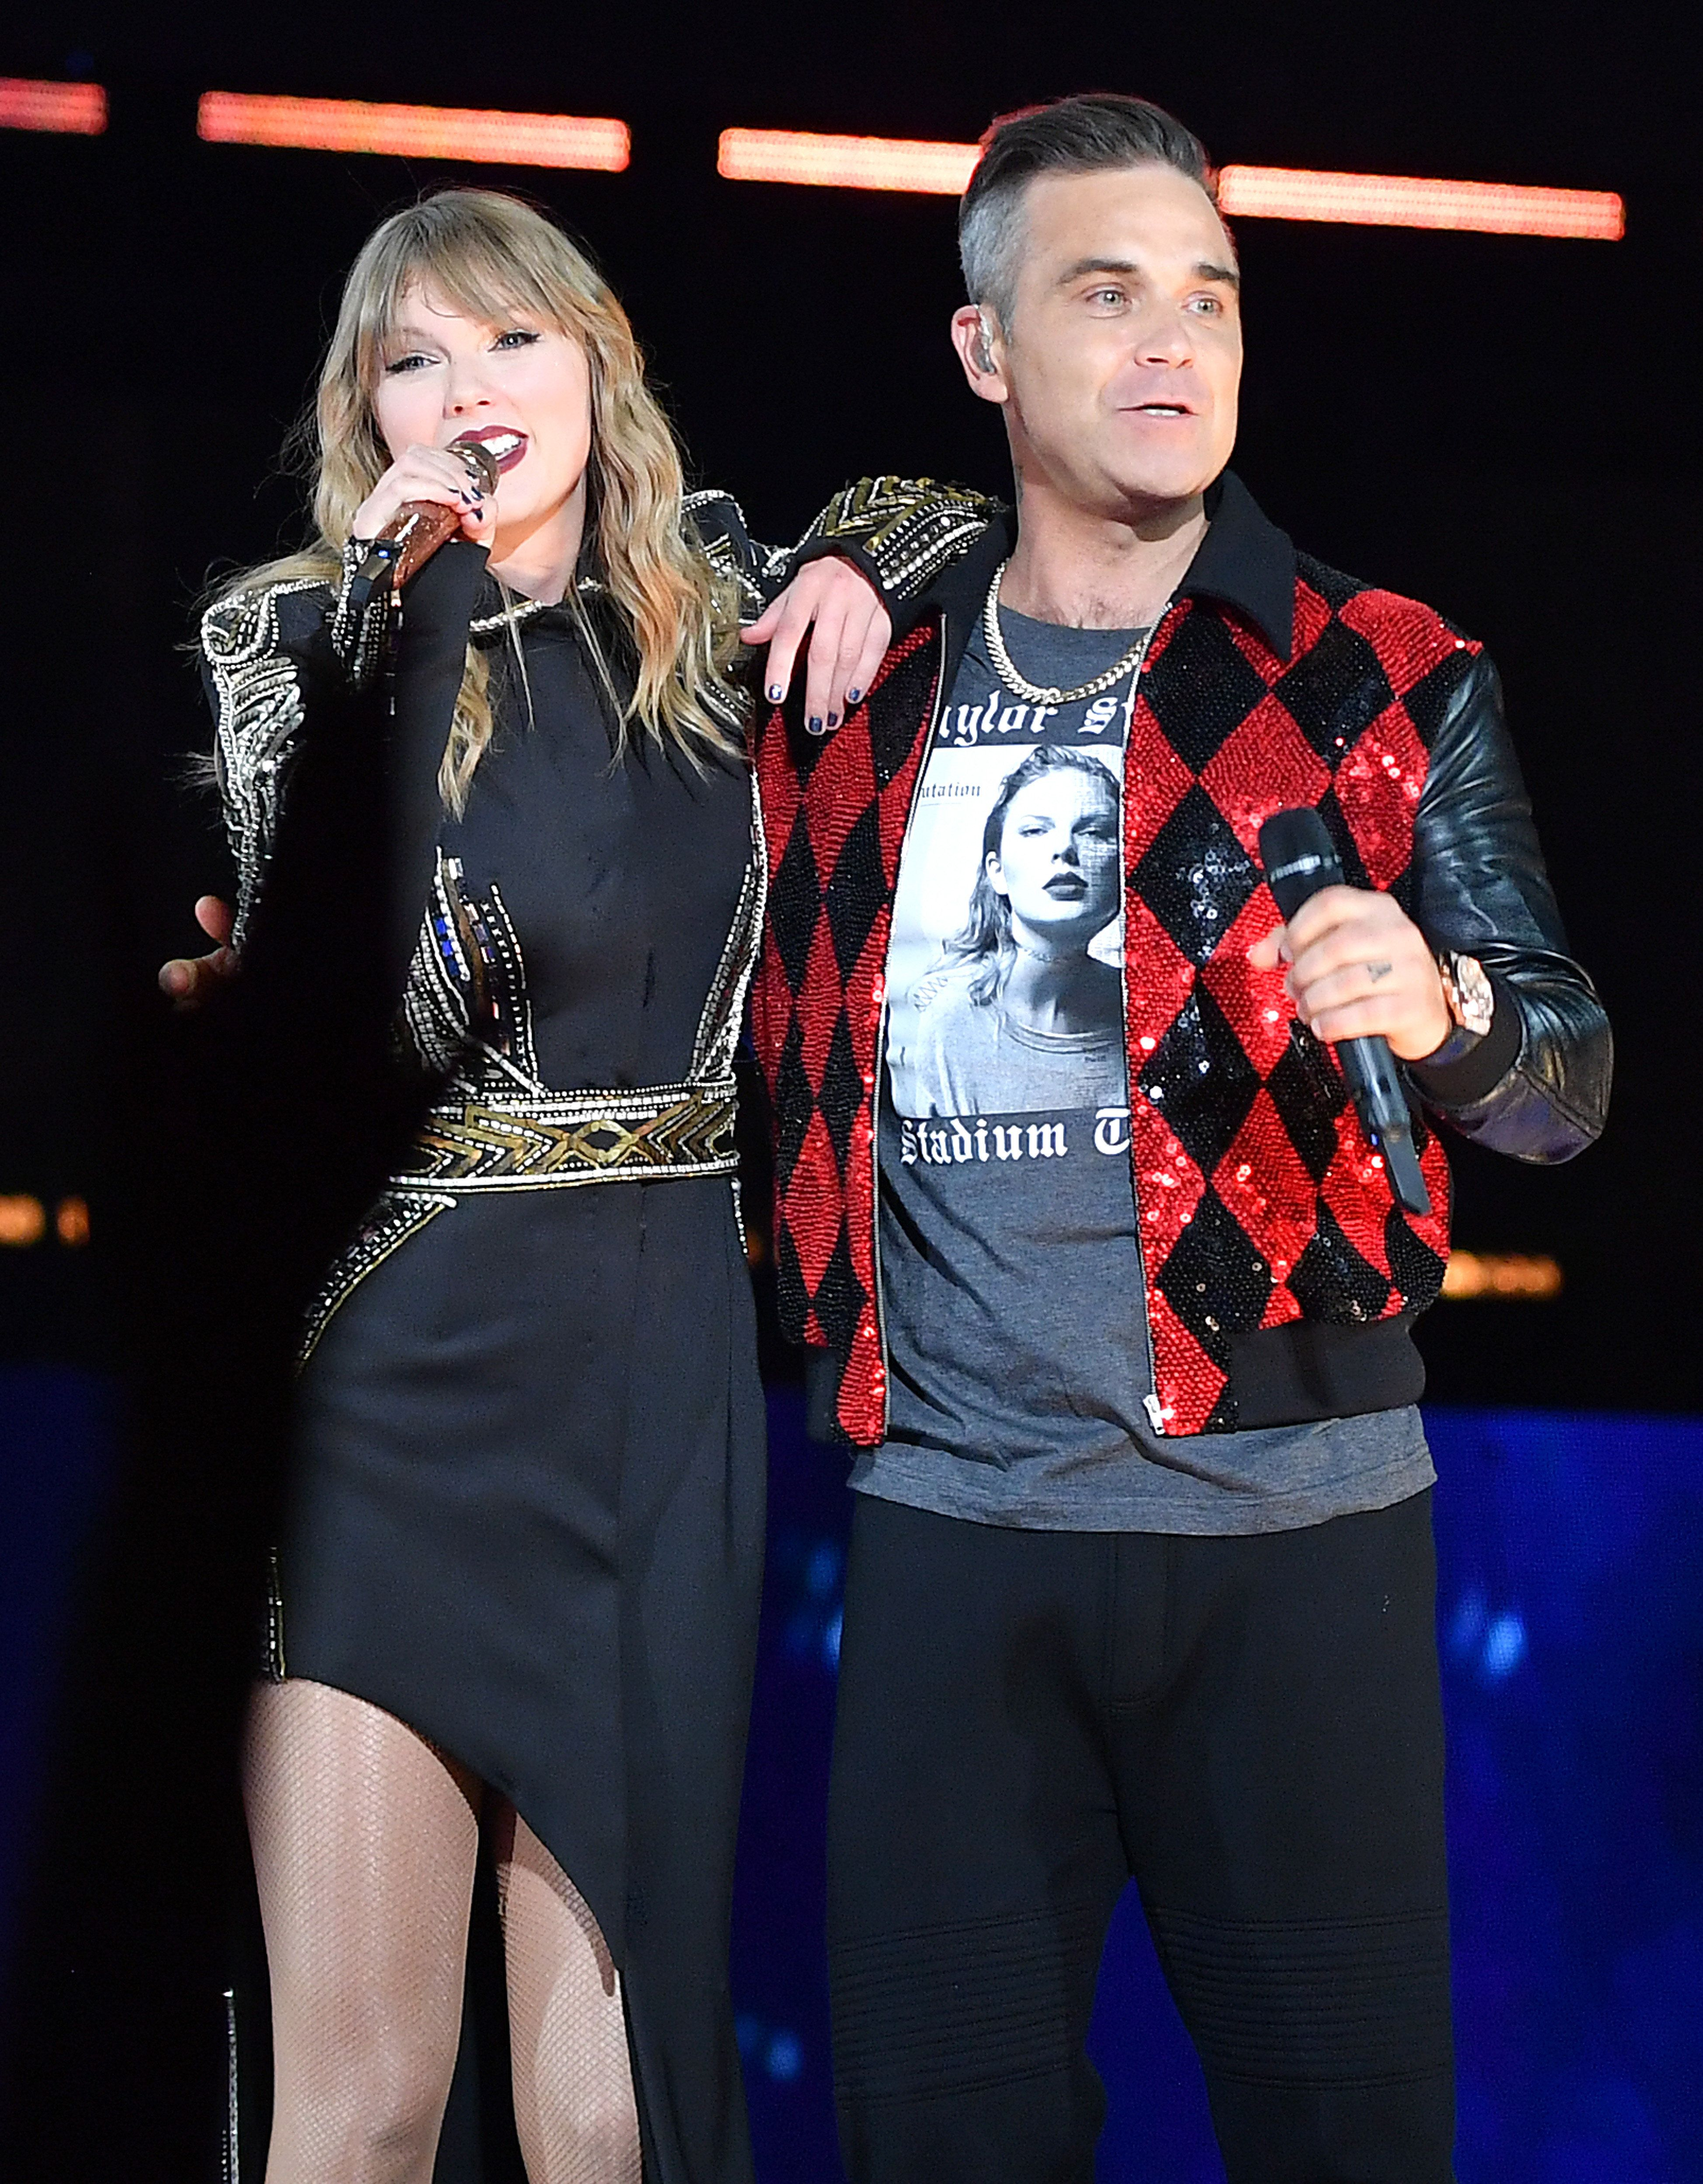 Robbie Williams joined Taylor Swift on stage at her